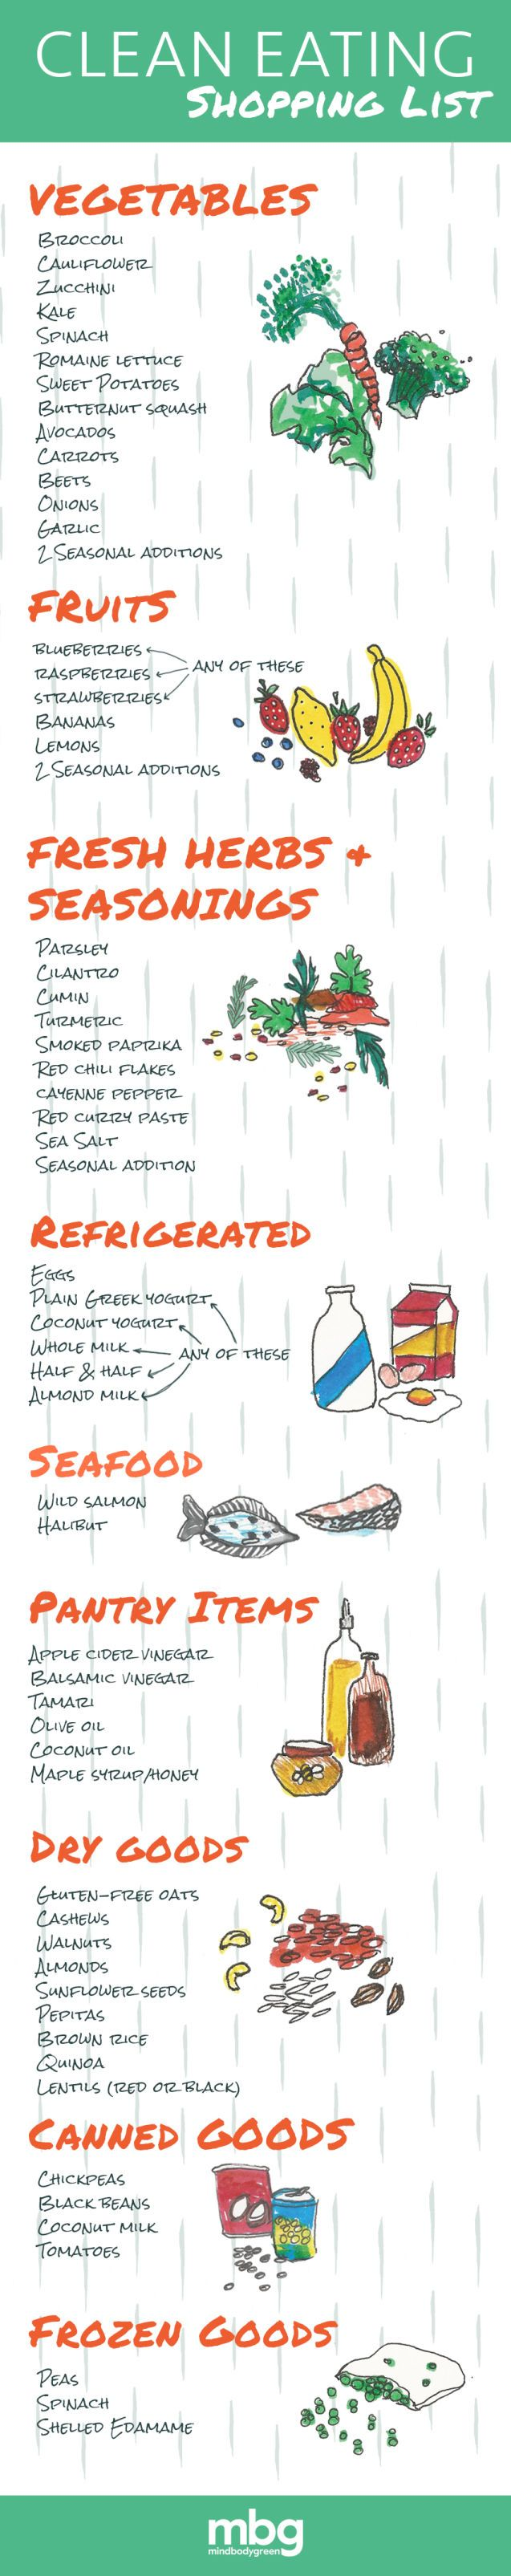 This Shopping List Will Help You Eat Clean